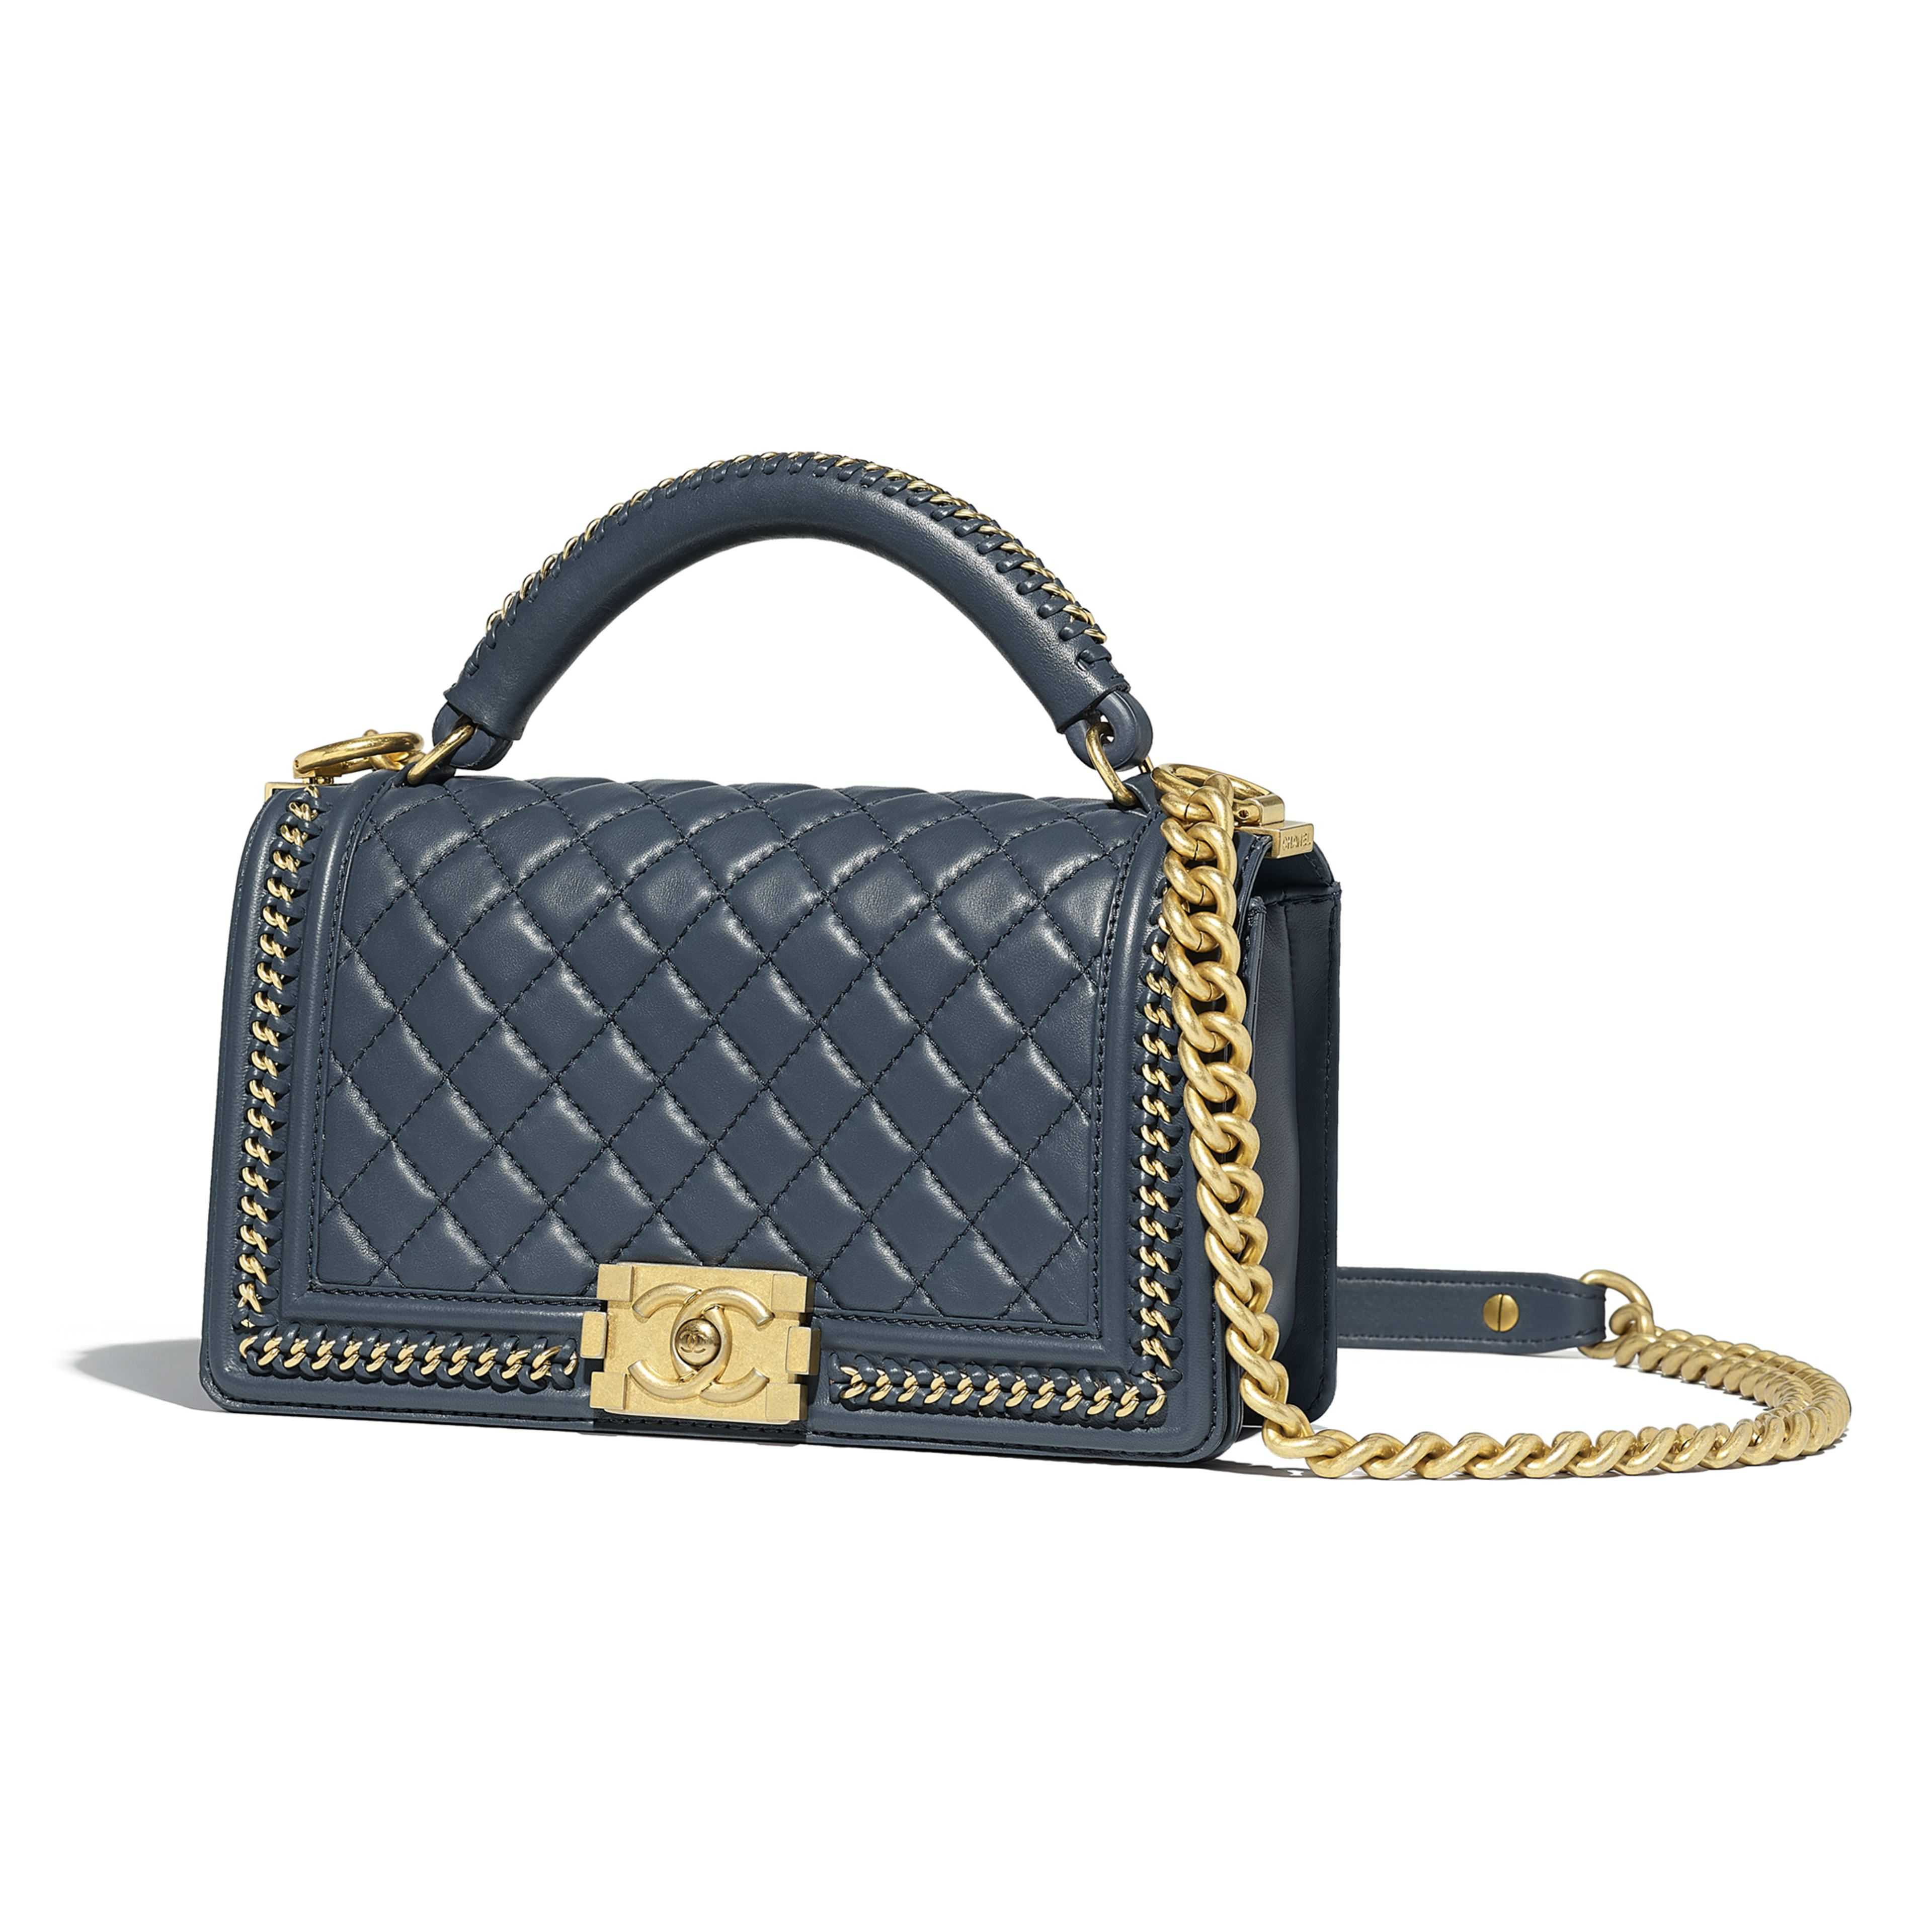 fbcbf988f0f8 Small BOY CHANEL Handbag Tweed, Calfskin, Imitation Pearls &  Ruthenium-Finish Metal Black & Navy Blue - view 1 - see full sized version  | Chanel & Cute in ...